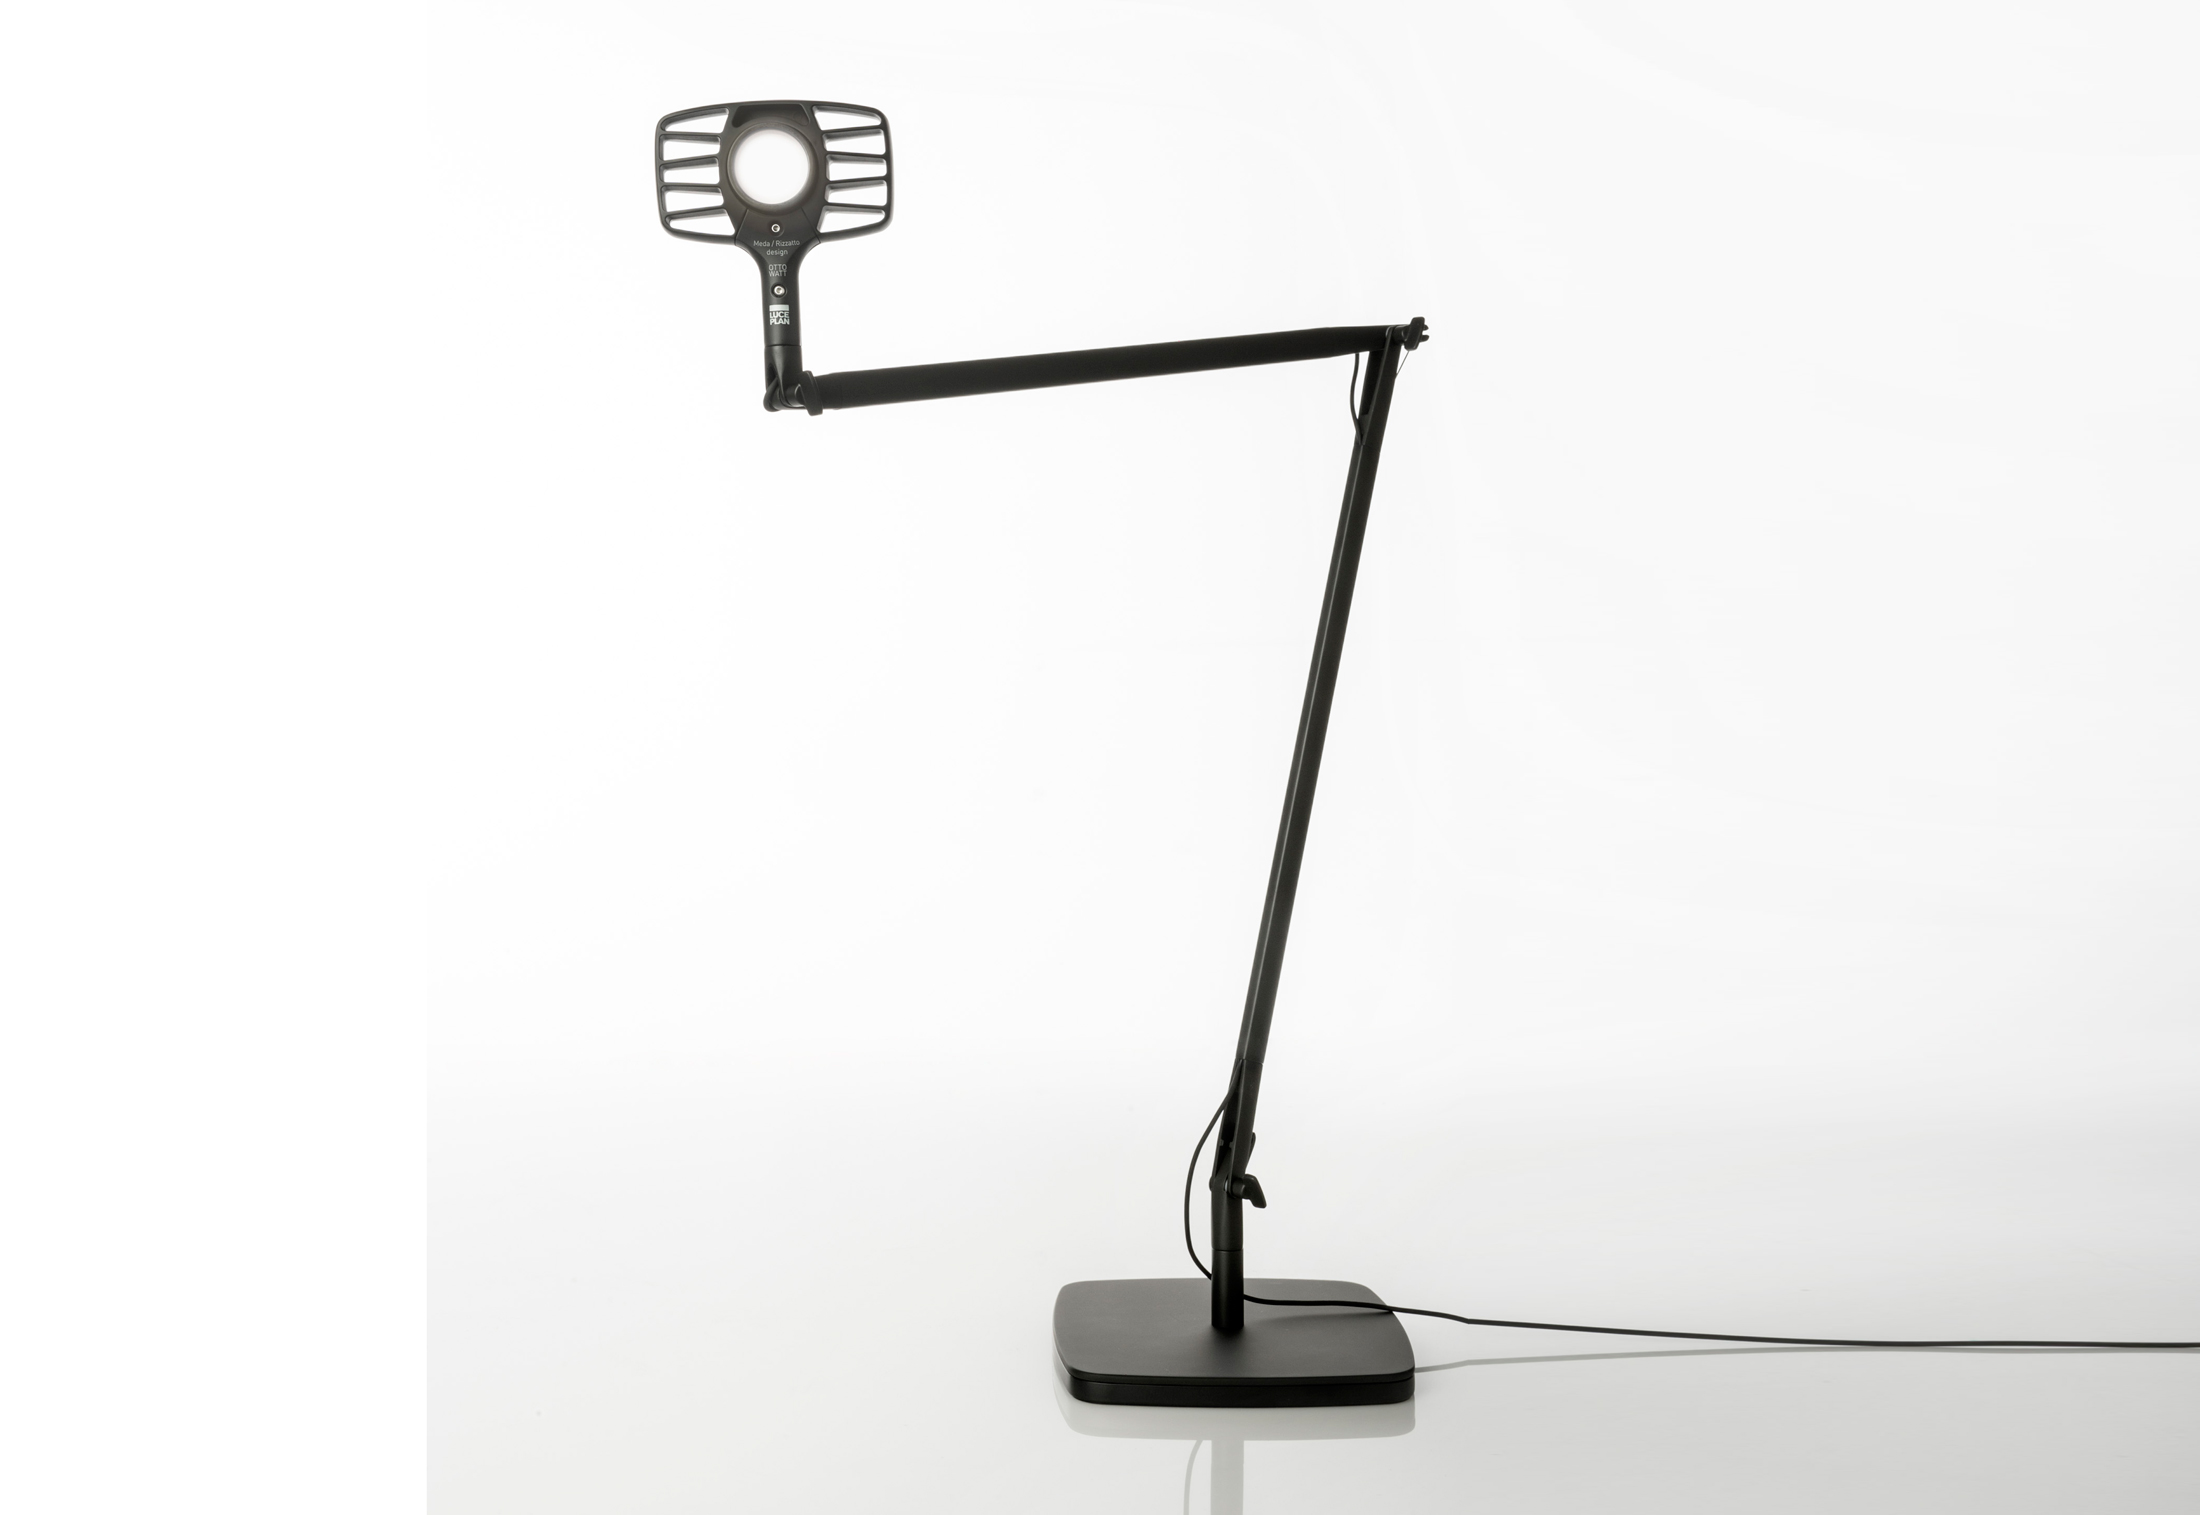 Otto watt table lamp by luceplan stylepark otto watt table lamp otto watt table lamp aloadofball Choice Image